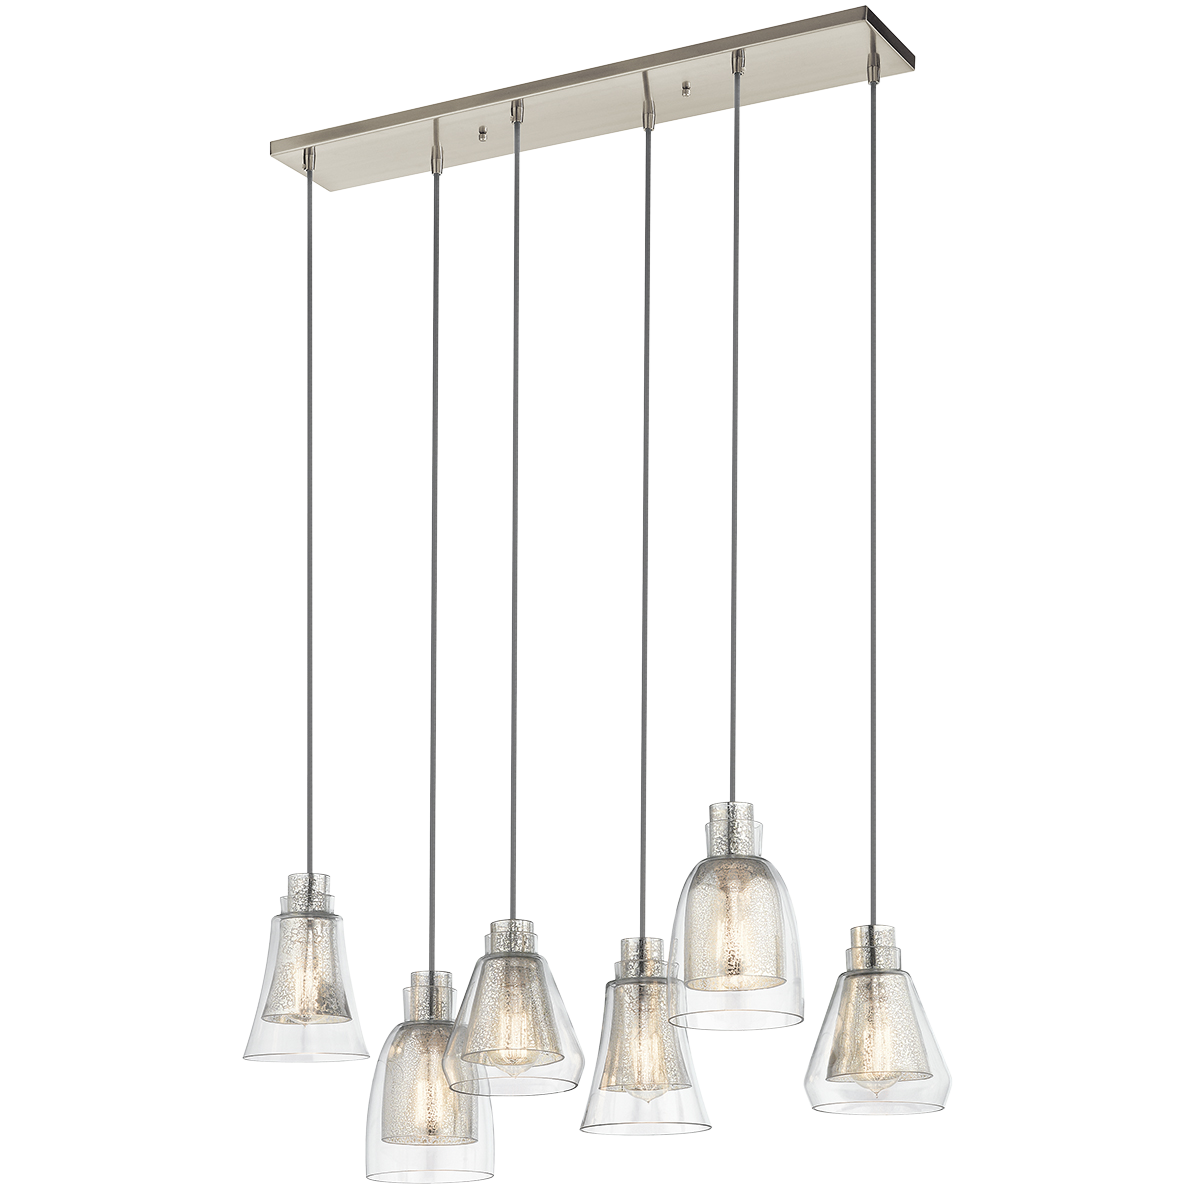 Kitchen chandelier (1, table) Evie 6 Light Chandelier - Brushed ...